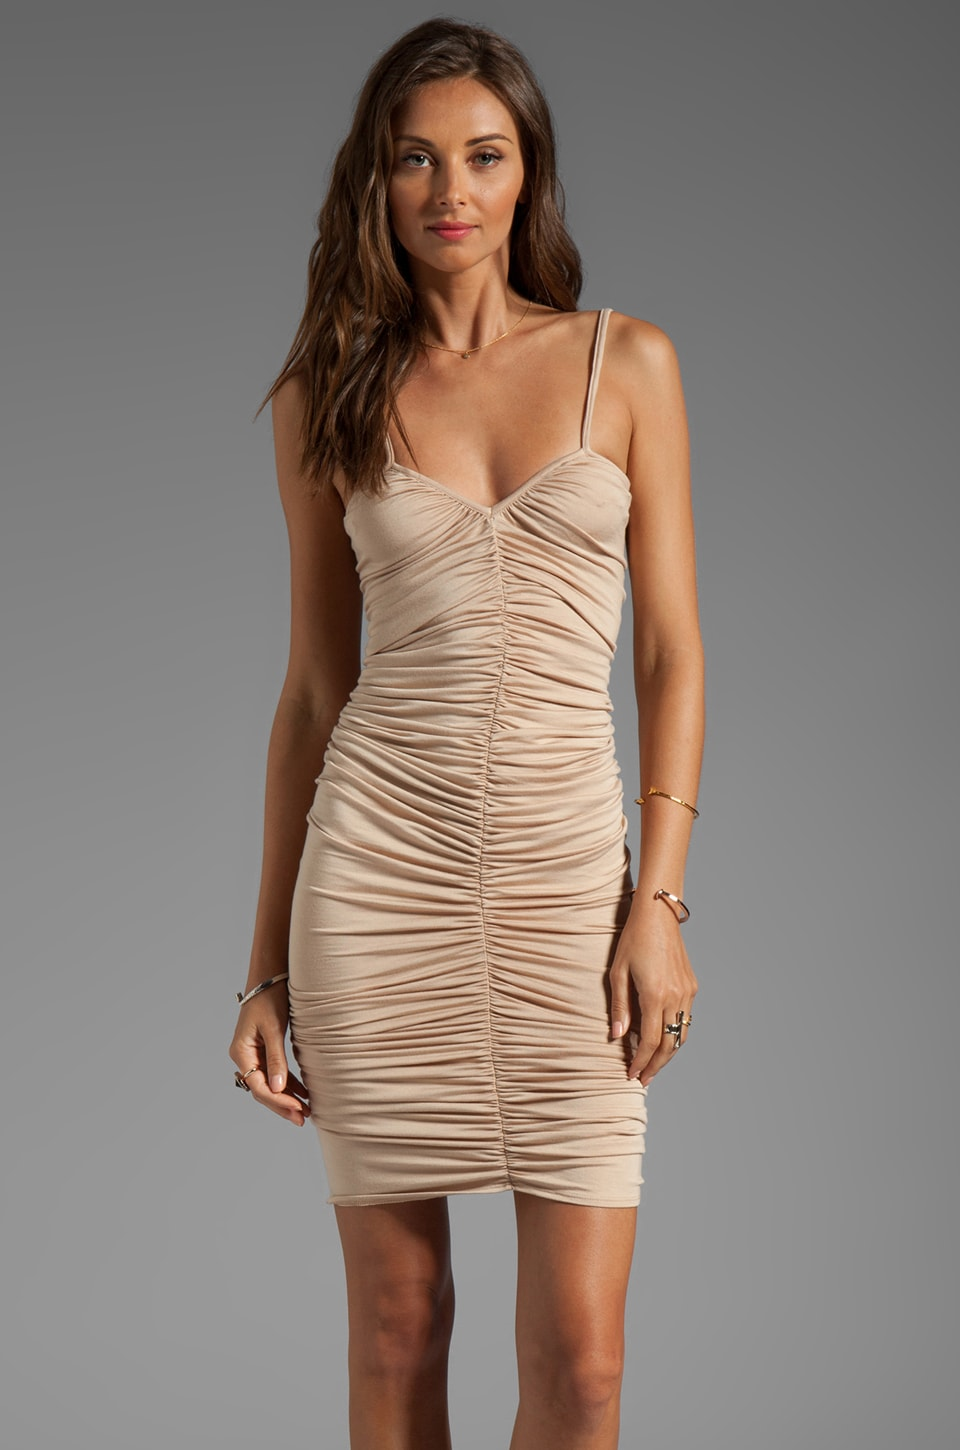 Rachel Pally Desiree V-Neck Dress in Bamboo